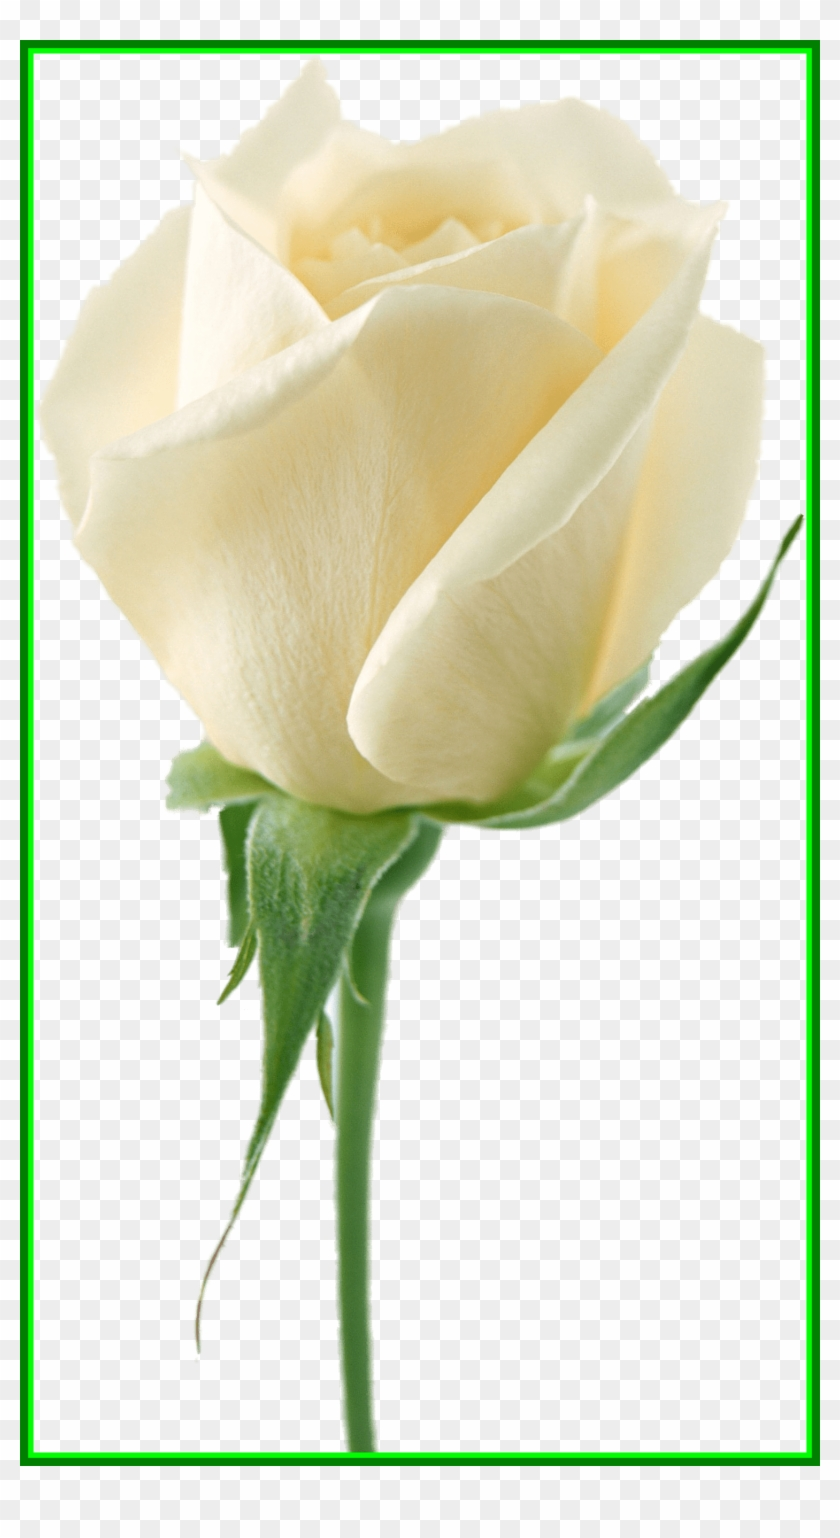 Lily Flower Lily Flower No Background Astonishing White White Rose